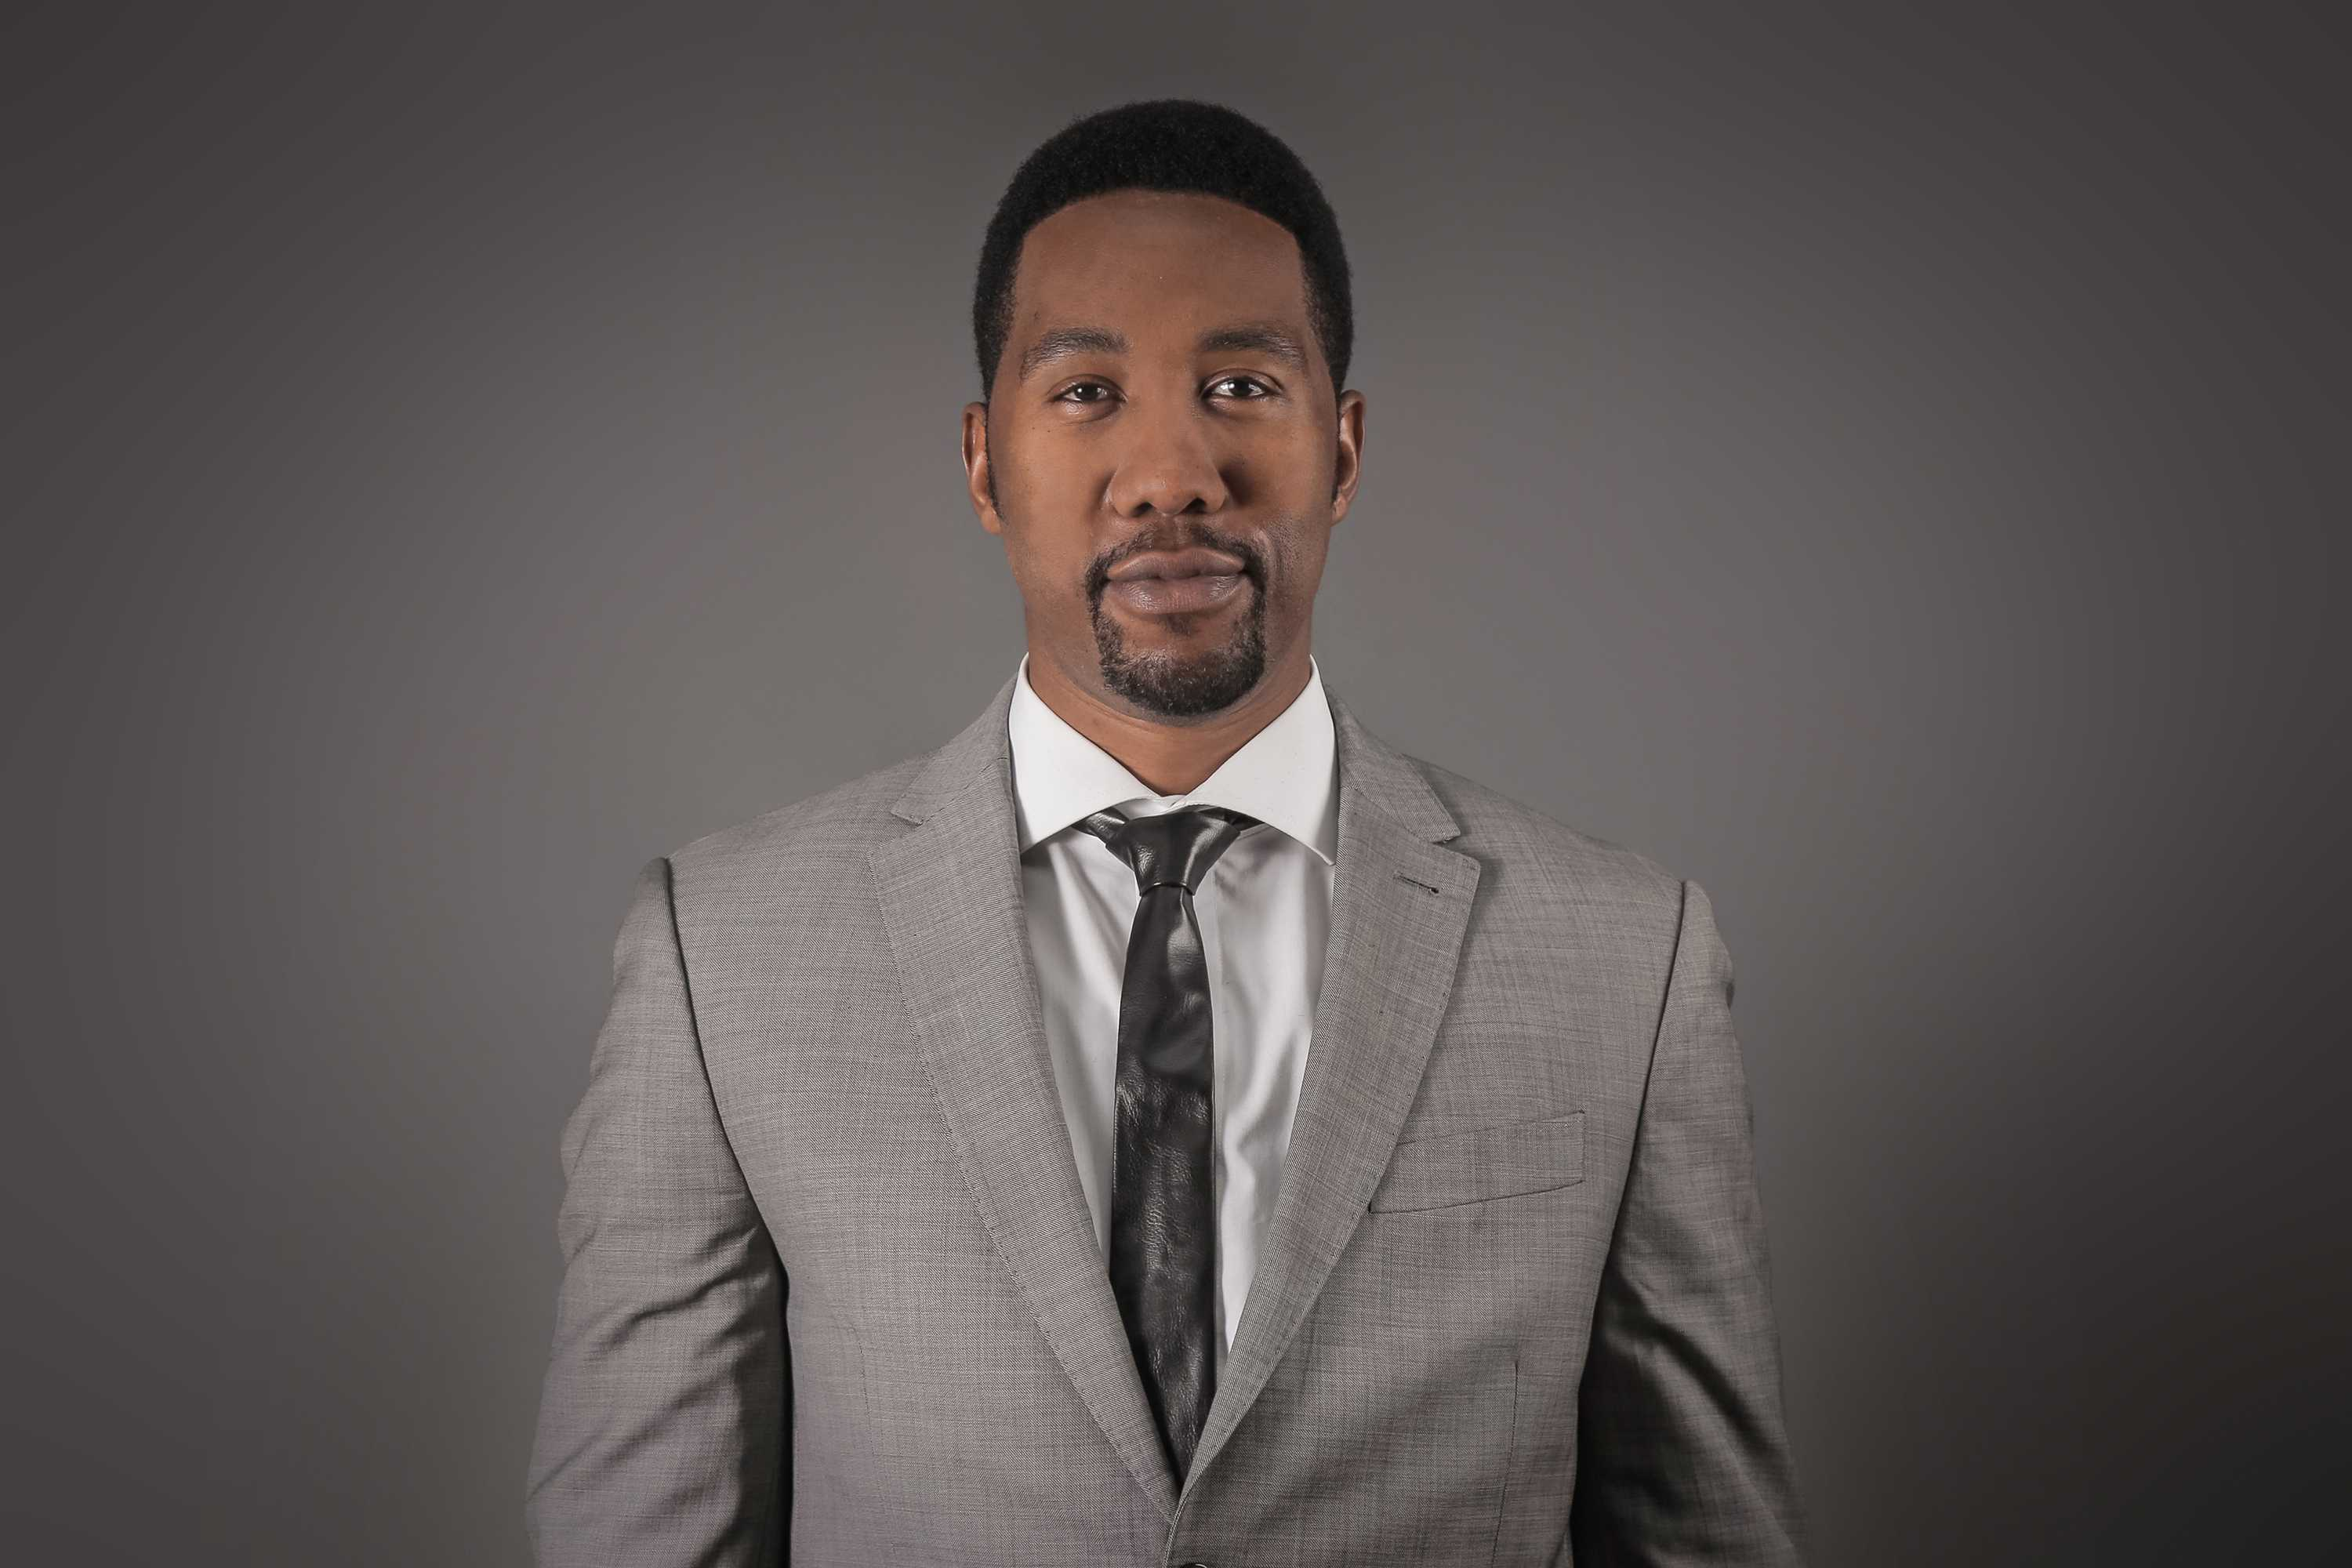 Nelson Mandela's grandson to speak at UNF in February